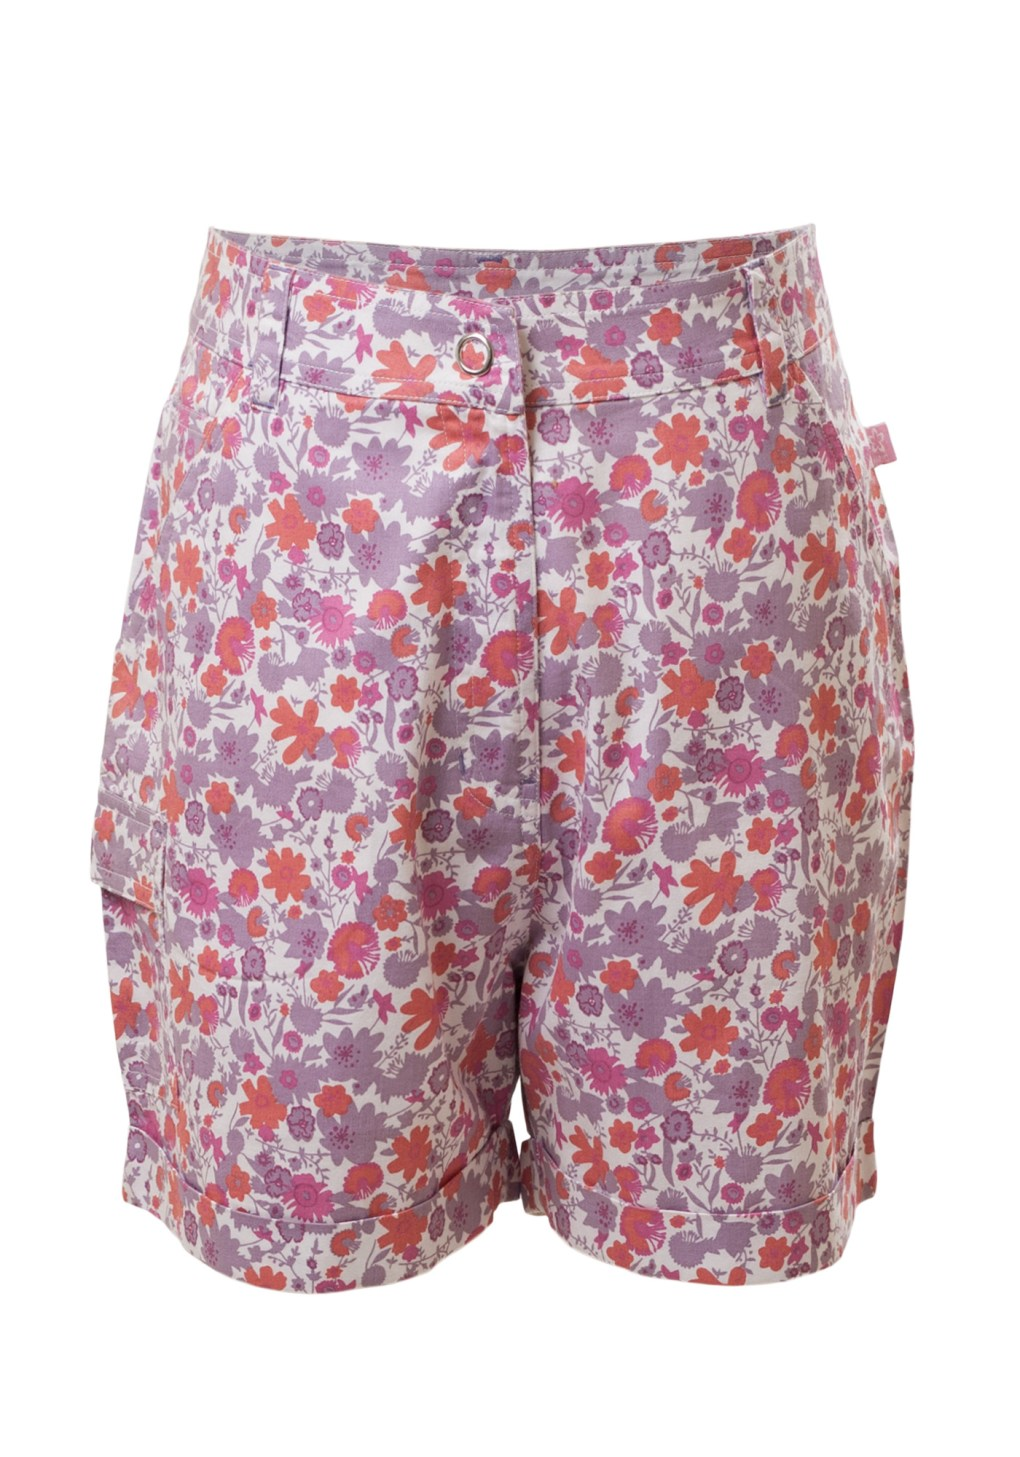 MINC Petite Tropical Safari Girls Roll Back Cuff Shorts in Printed Cotton